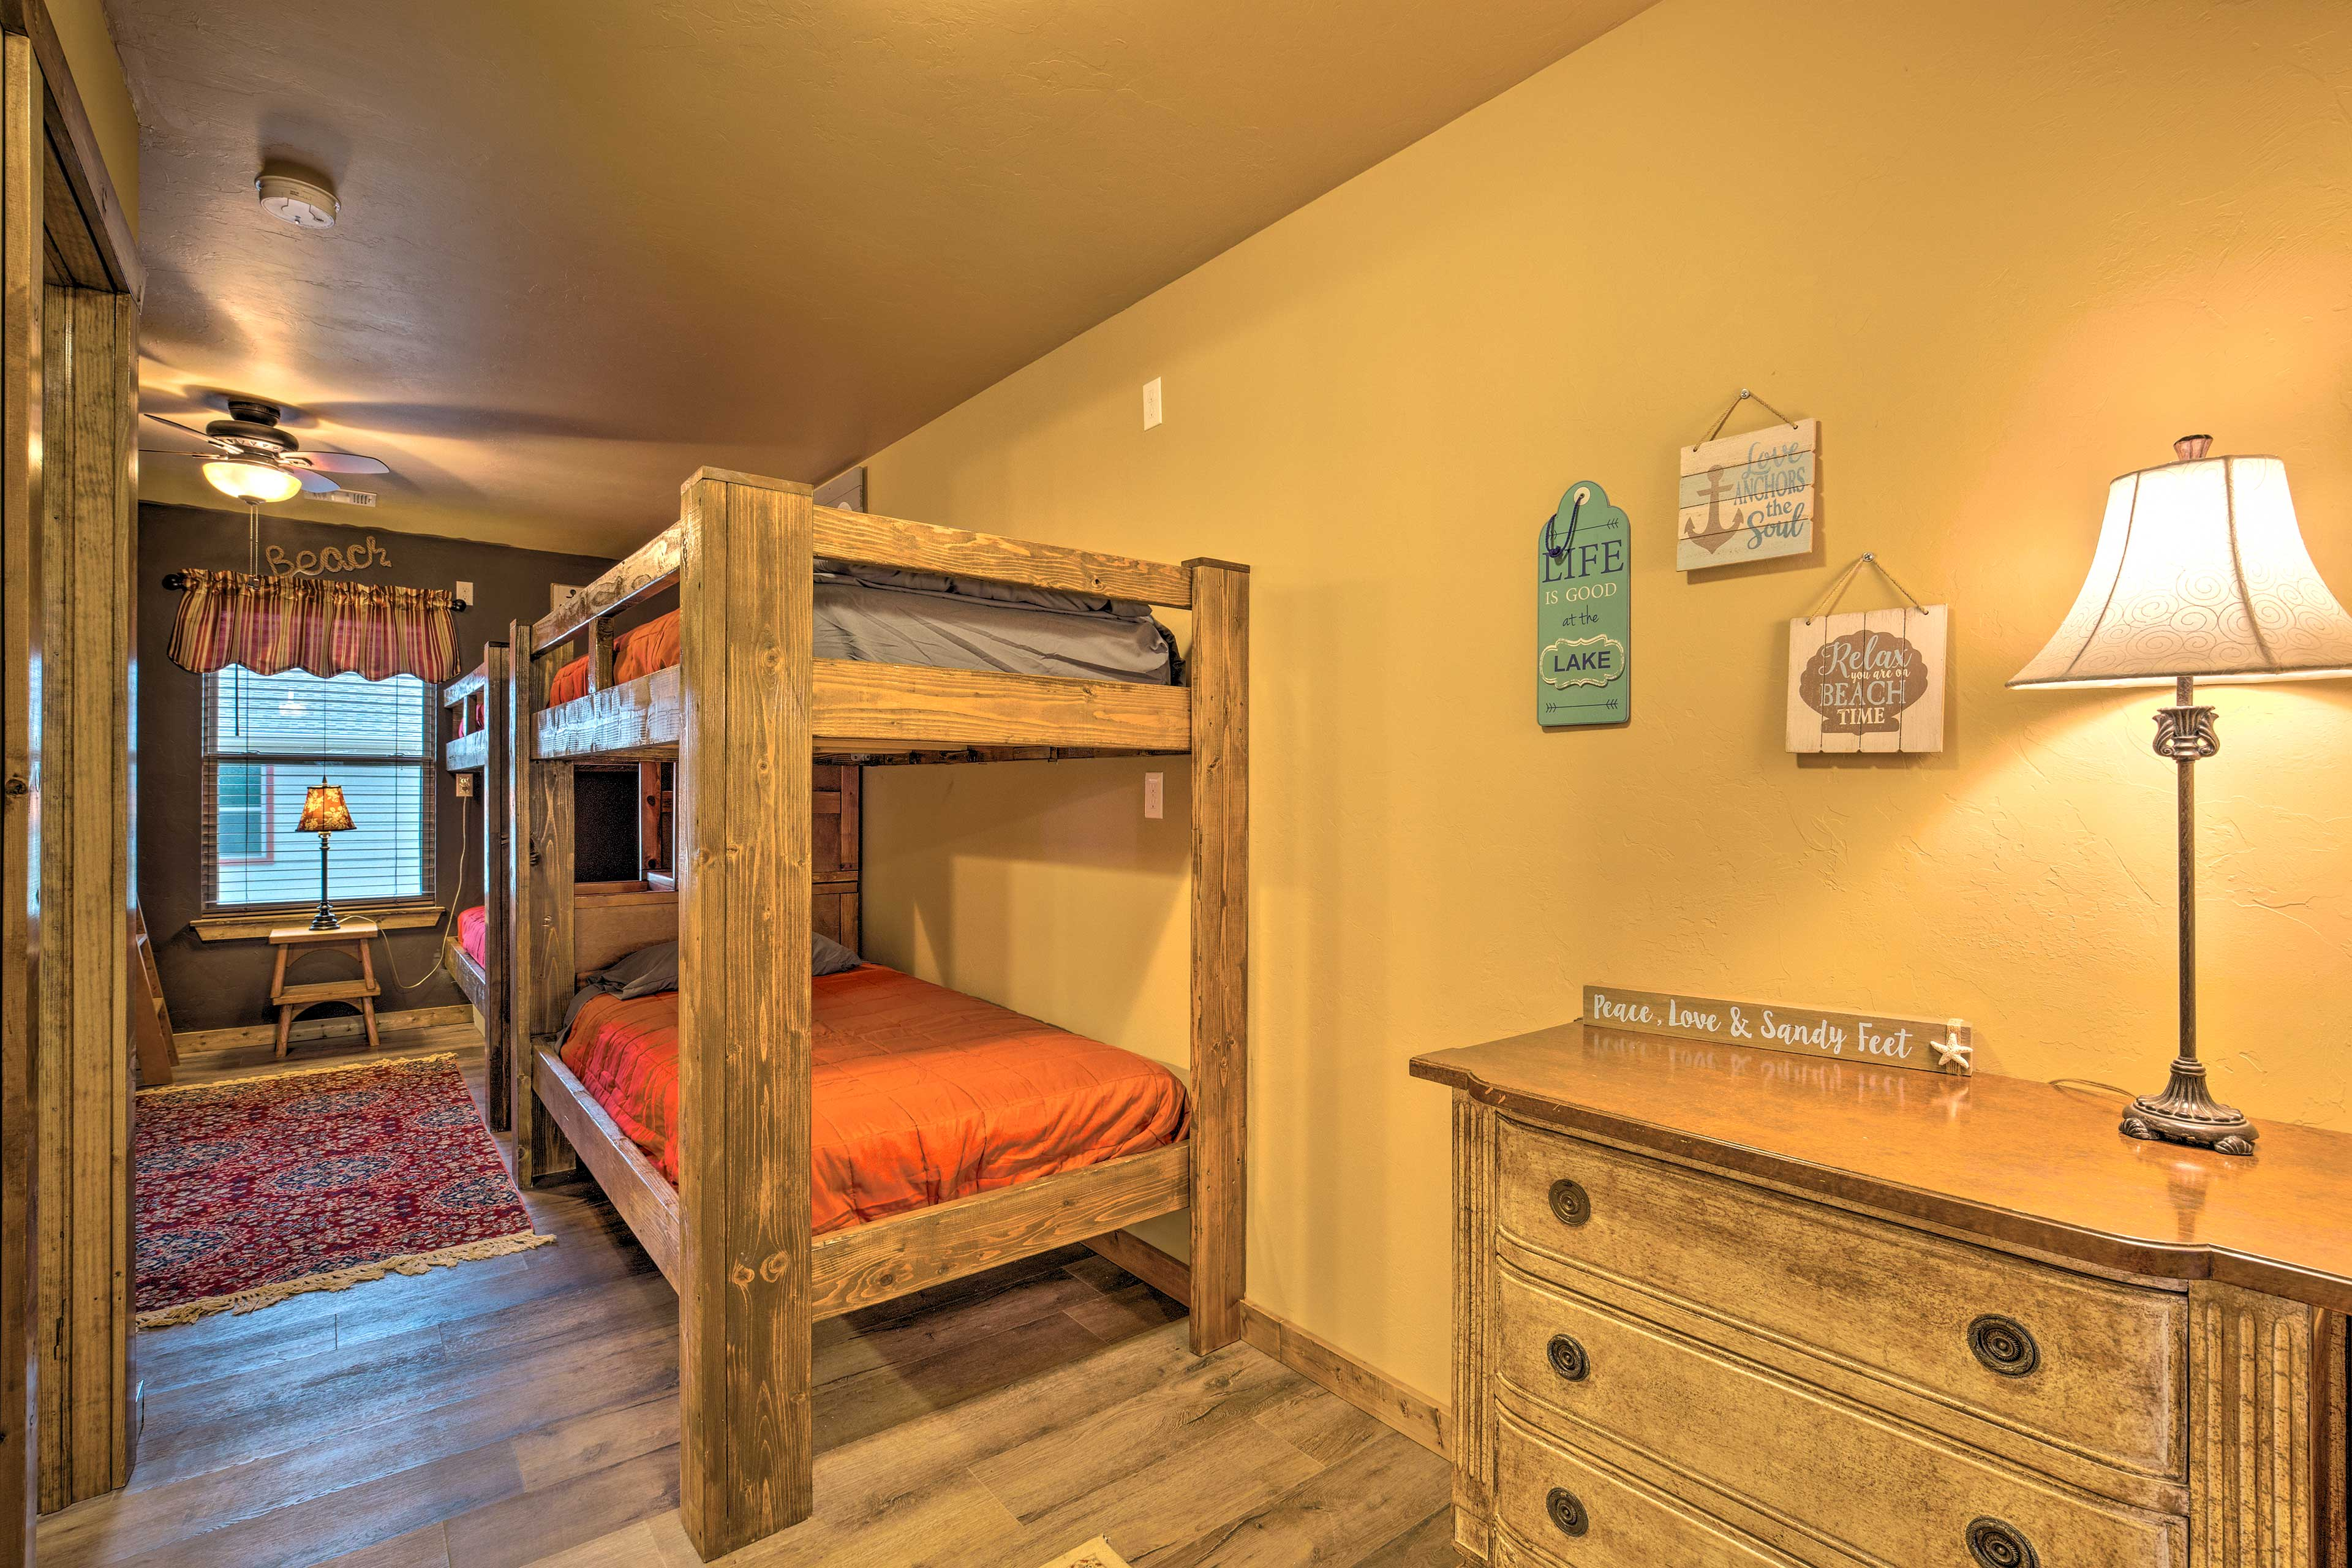 Kids will love claiming the bunk room at night.